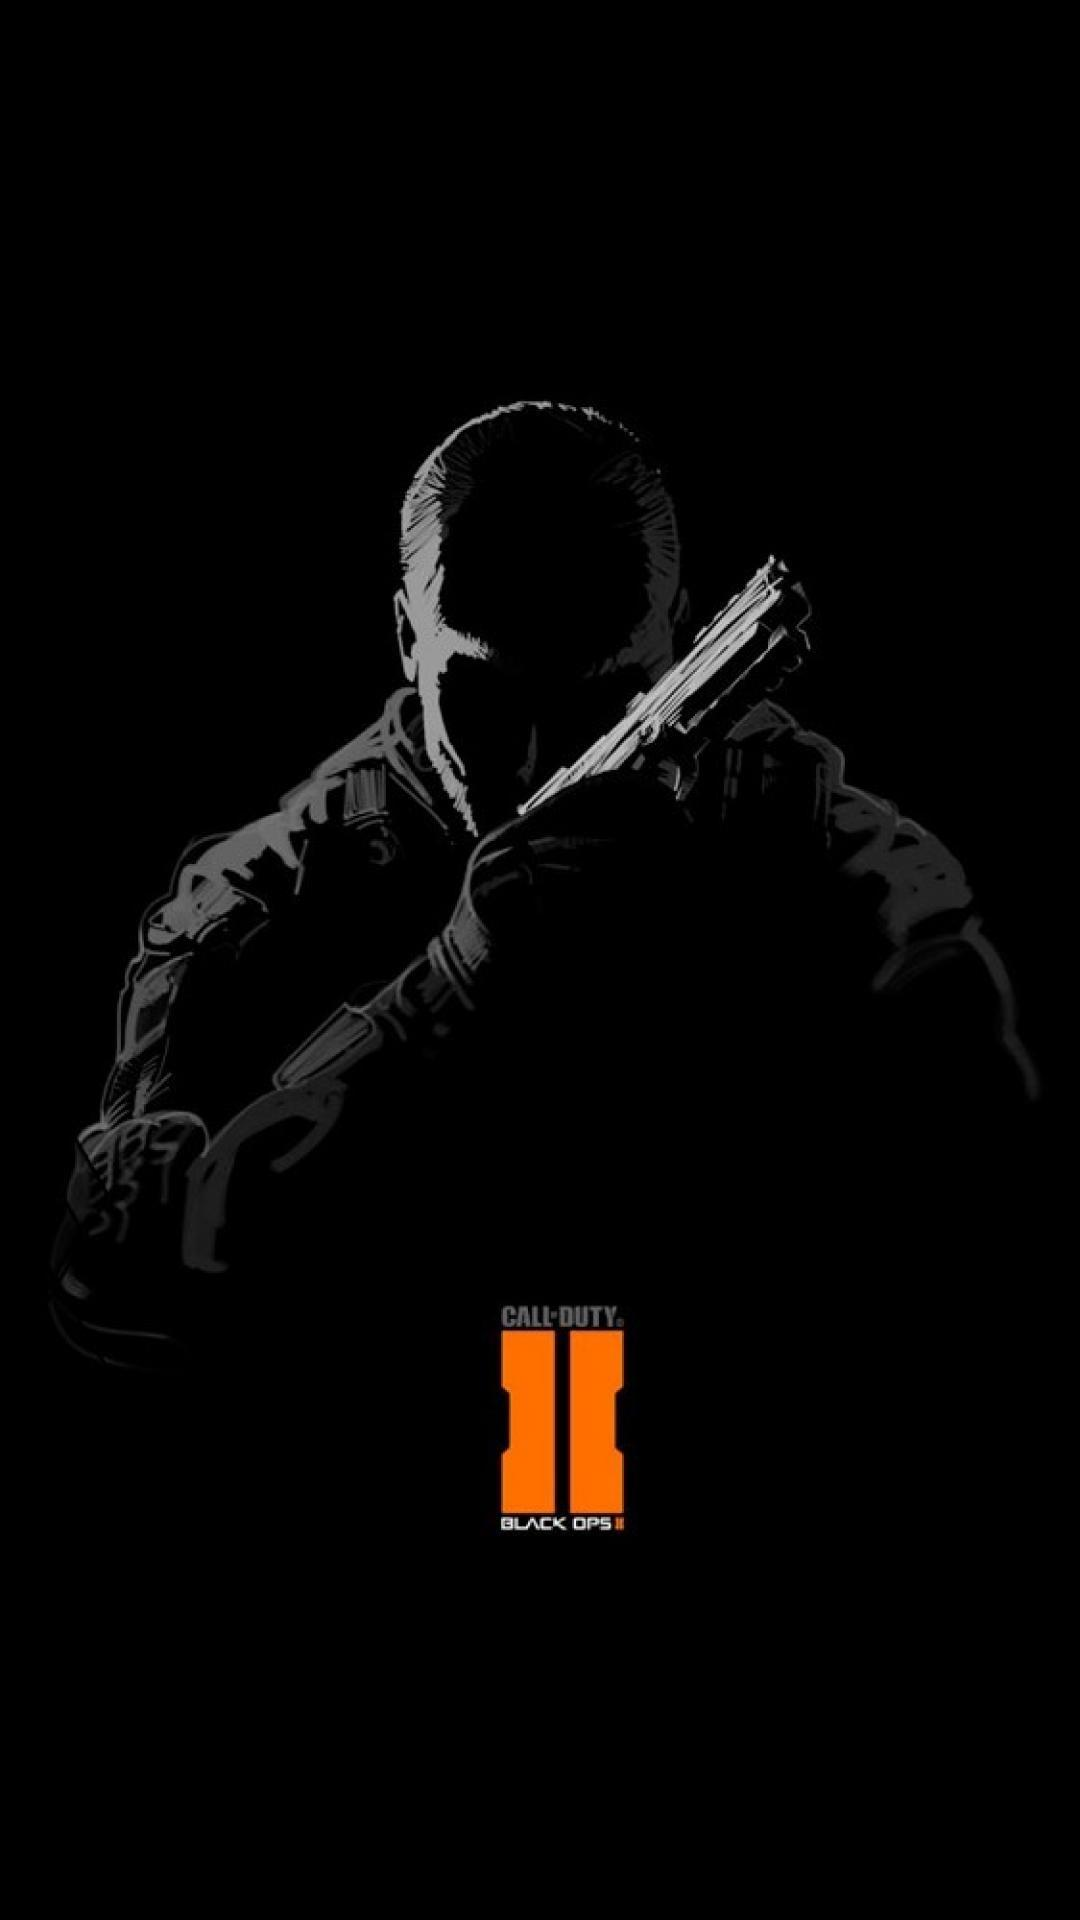 black ops 2 iphone wallpapers